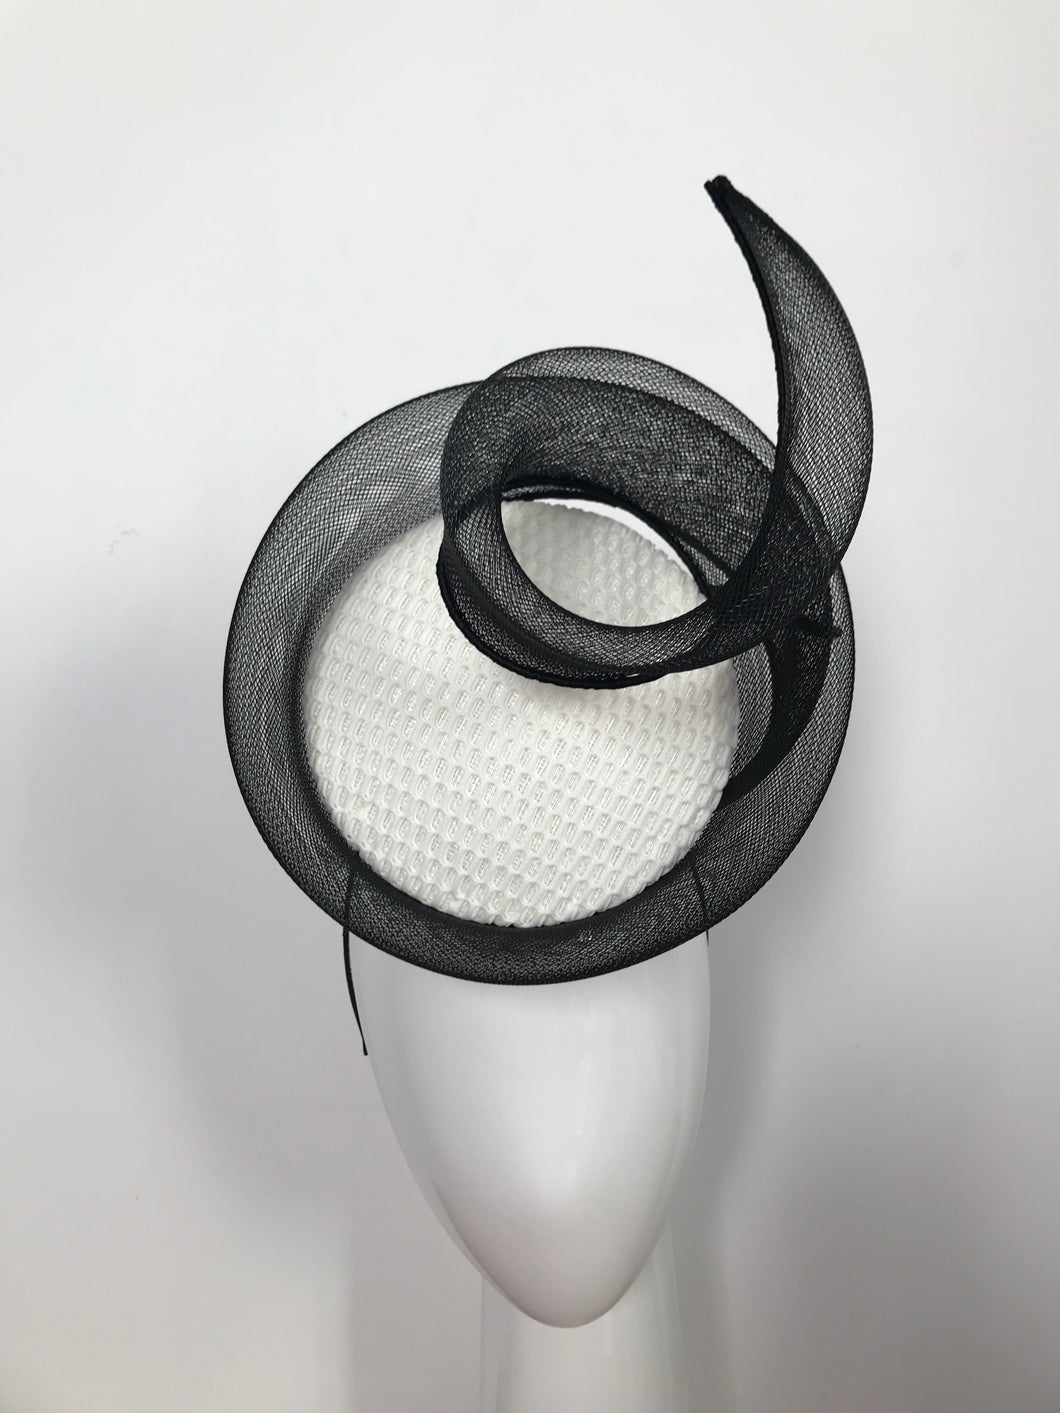 3D Percher Disc in White with Black Crinoline Swirl